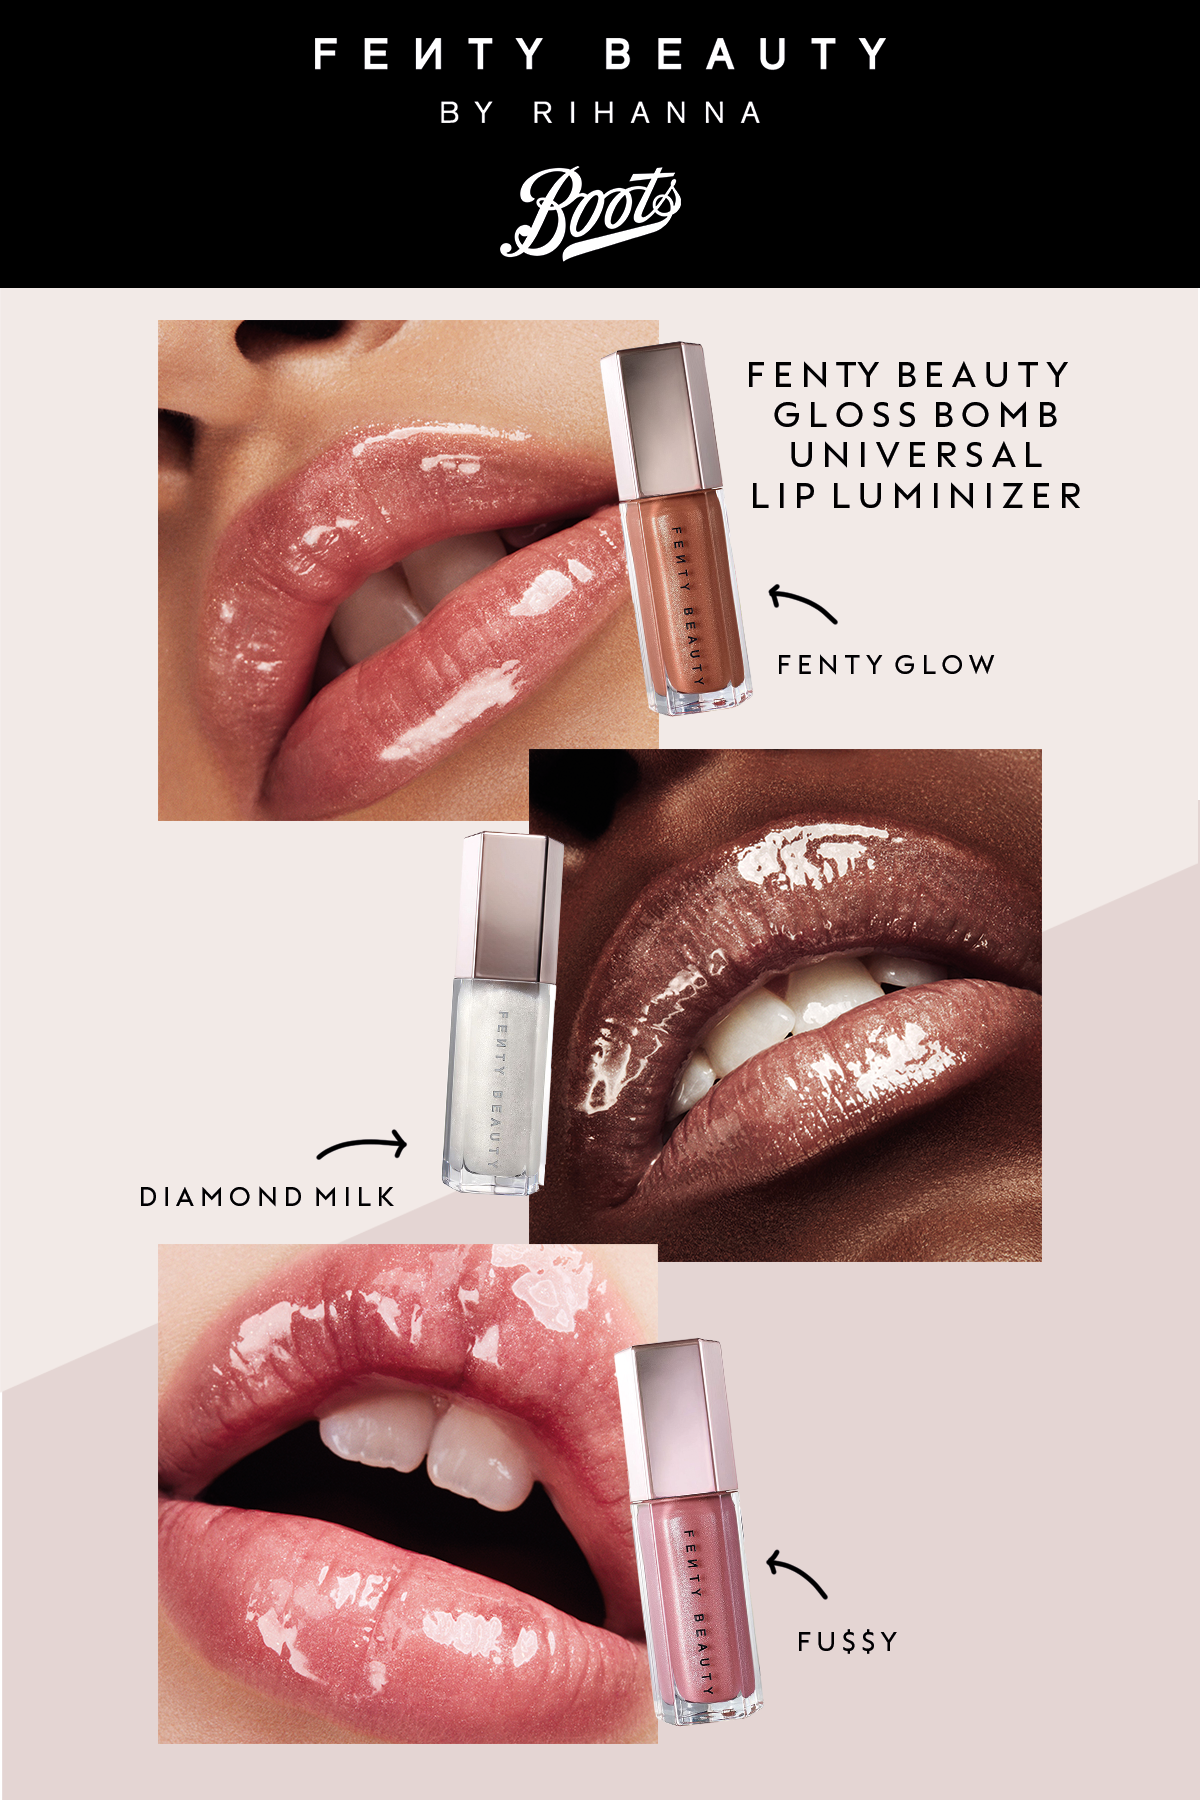 There's no such thing as too much gloss! 3 shades of FENTY